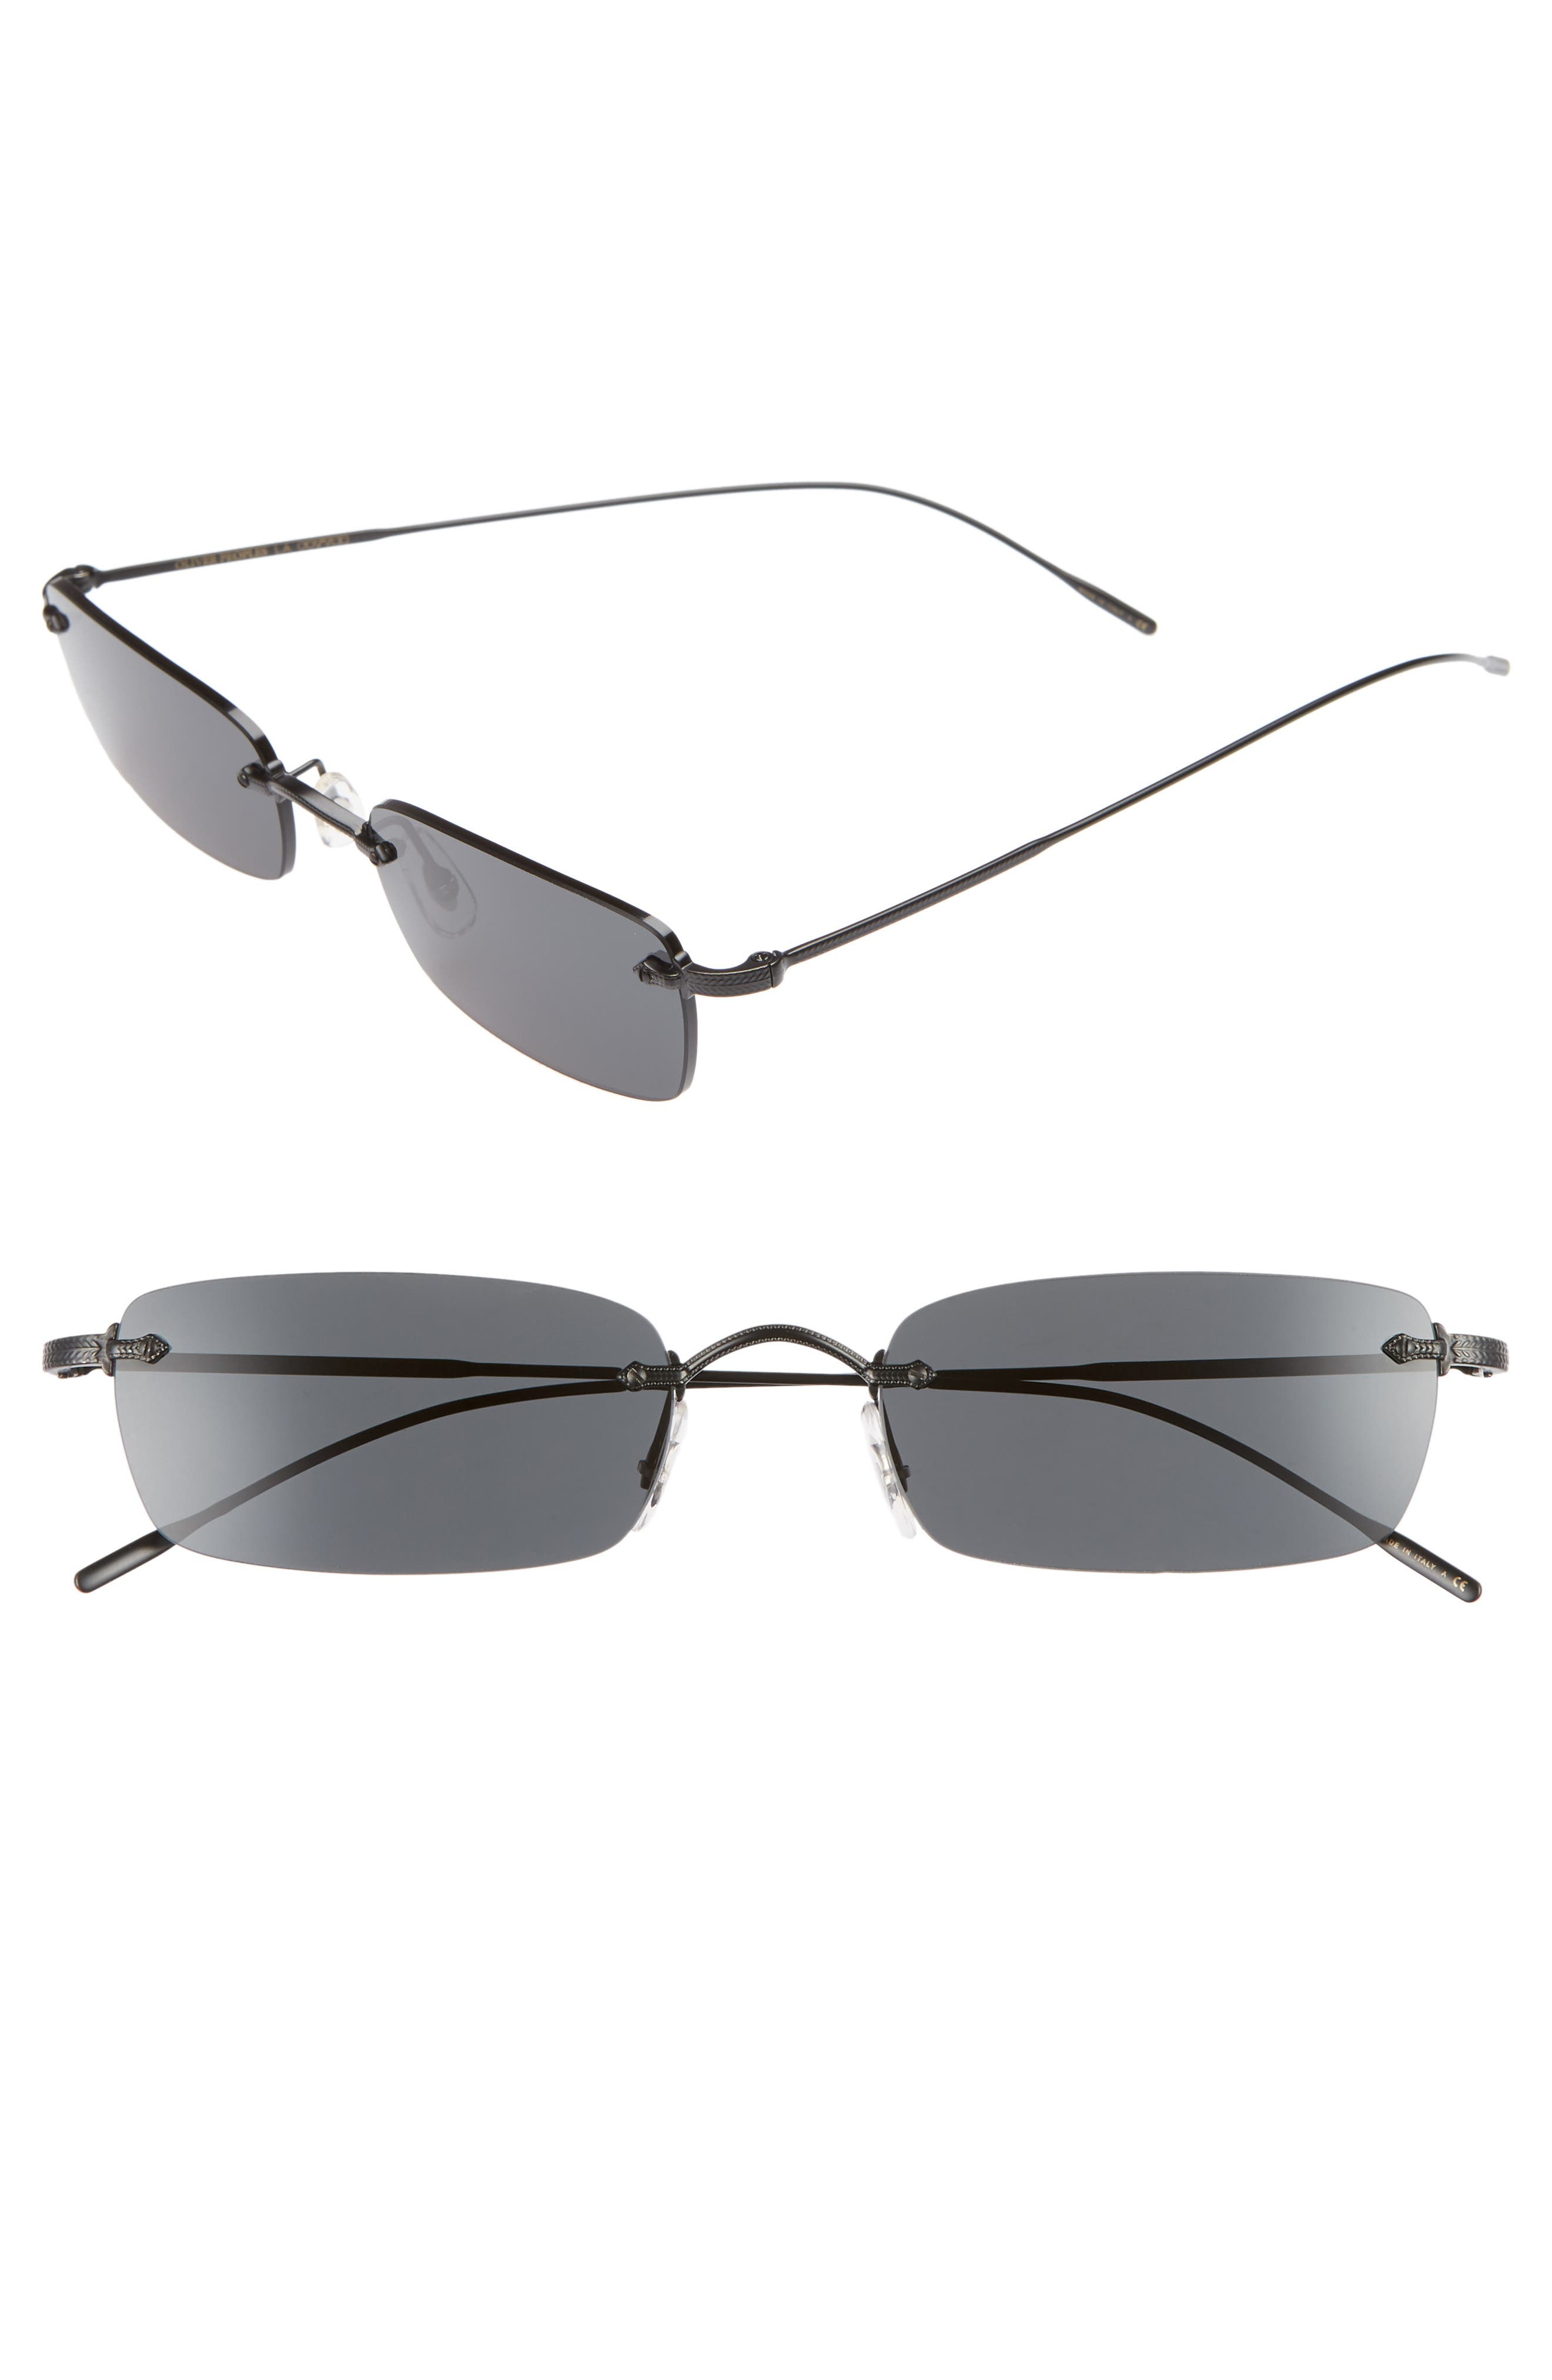 Oliver Peoples Daveigh 5m Rectangular Sunglasses - Matte Black